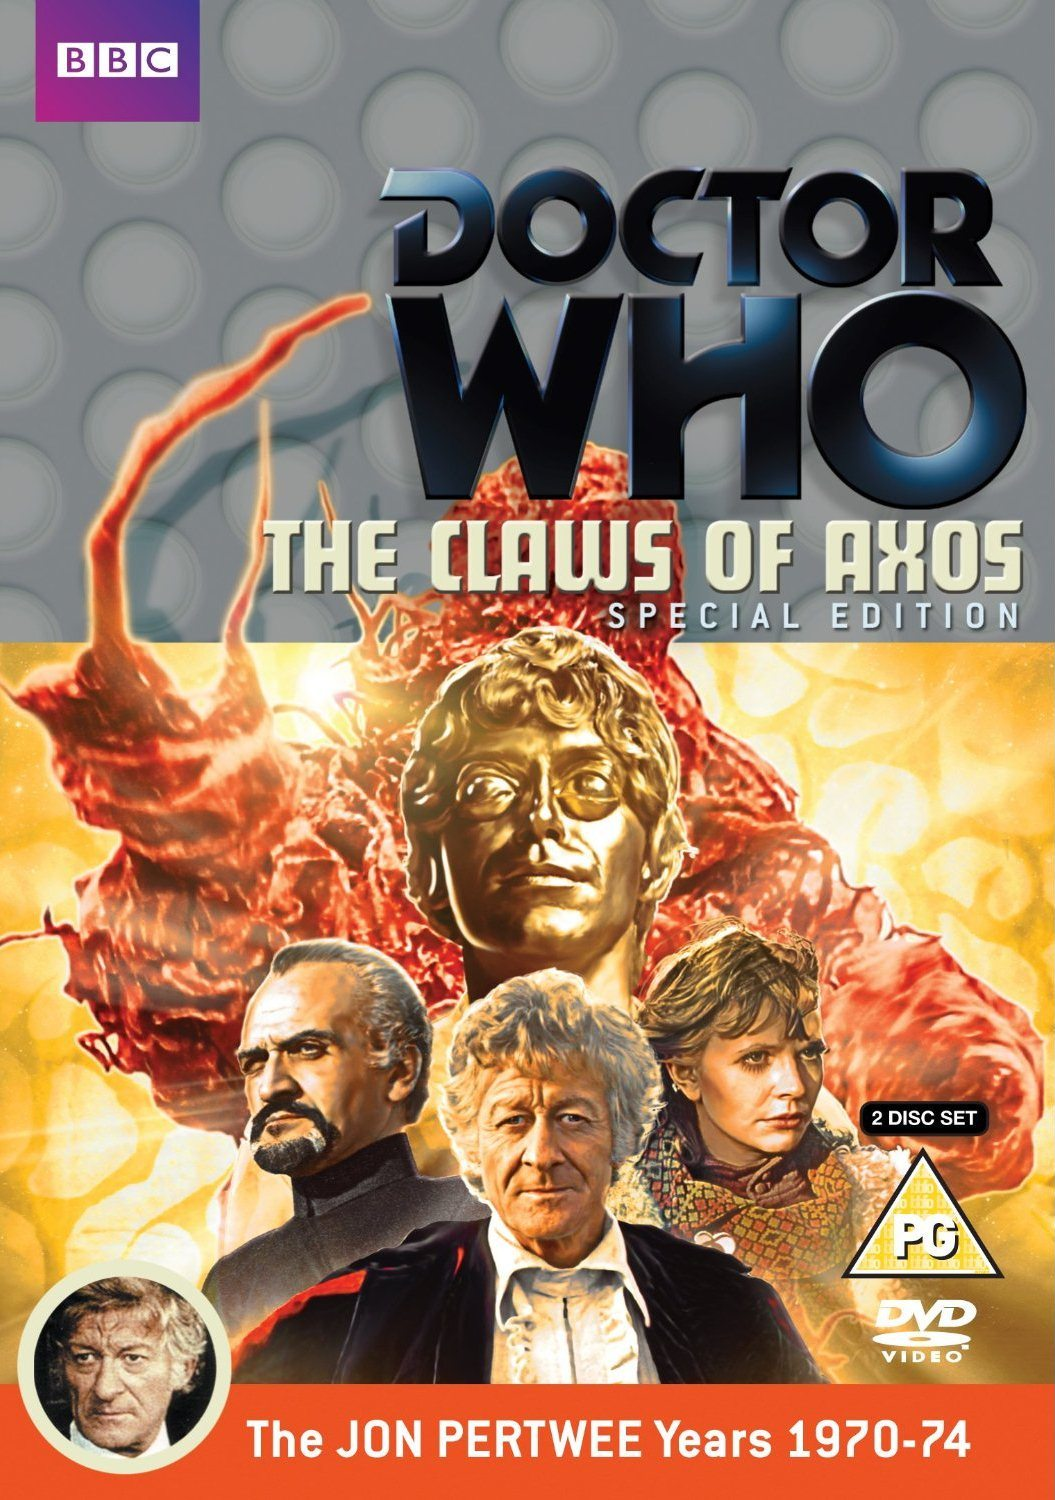 Claws of axos special edition uk dvd